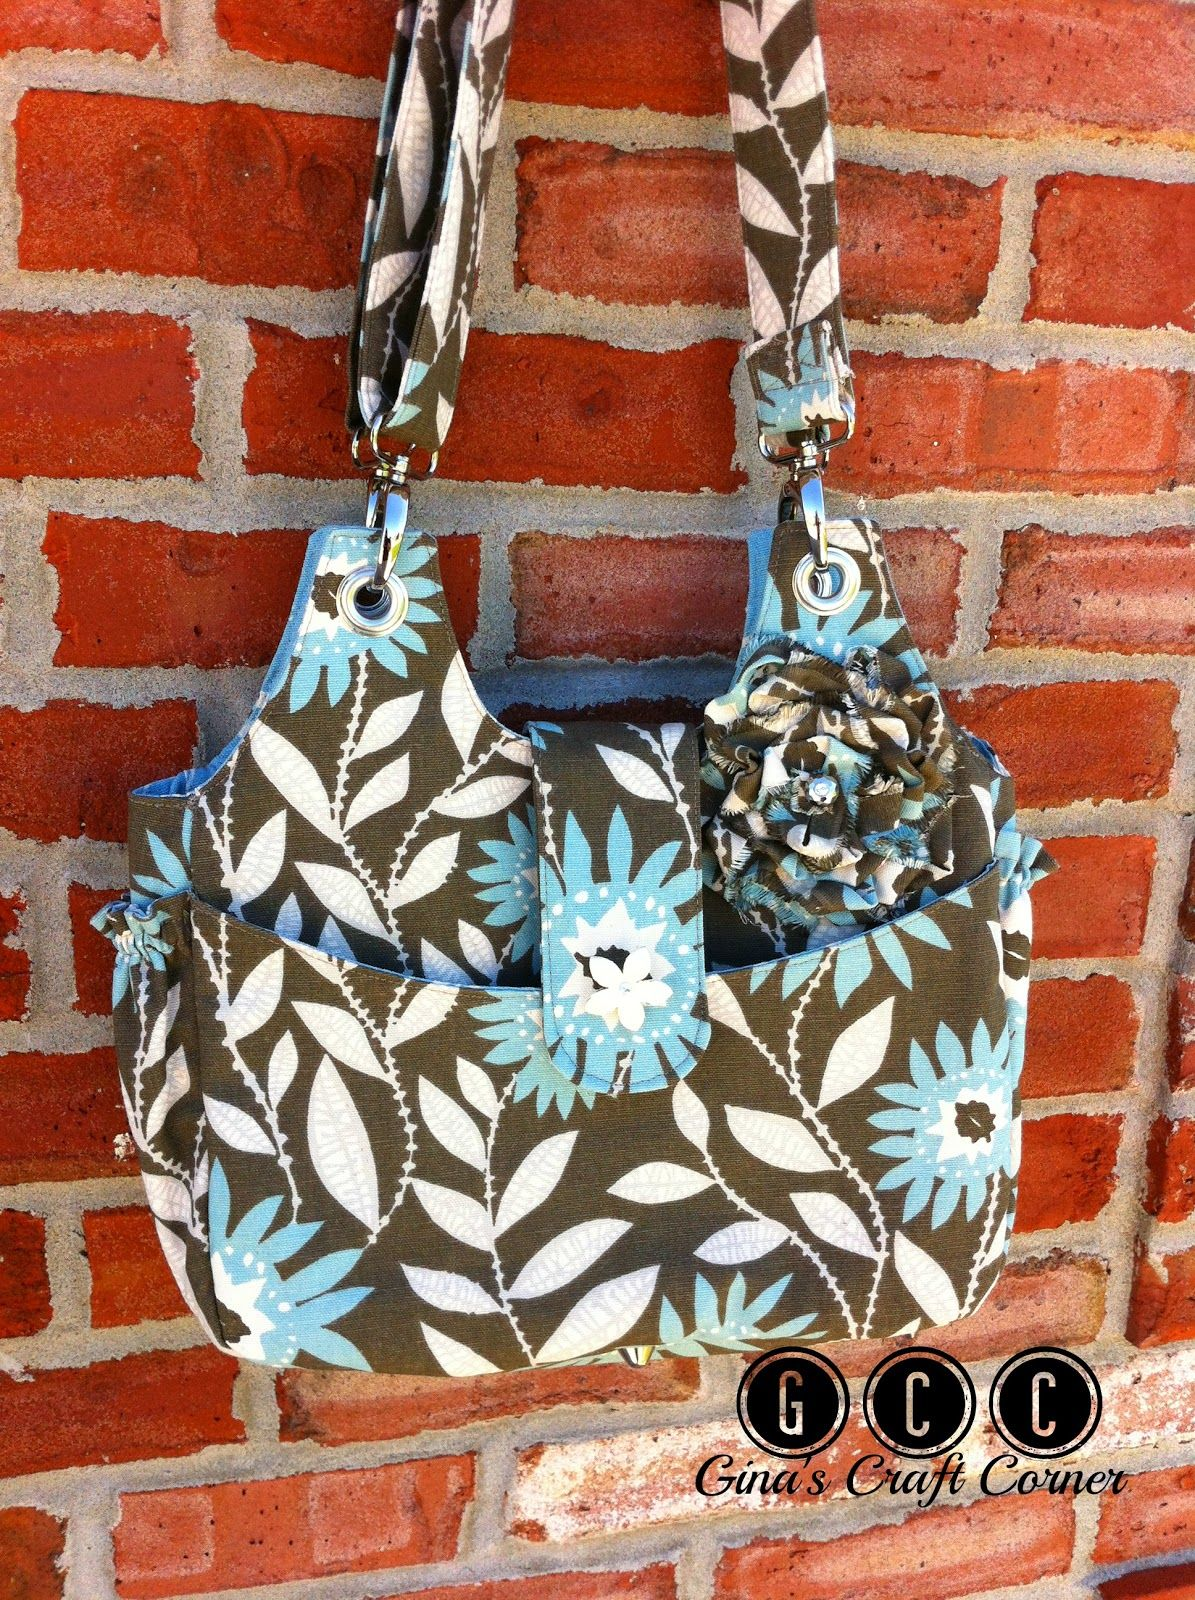 Gina's Craft Corner: Another Conceal and Carry Purse in Gorgeous Fabric...